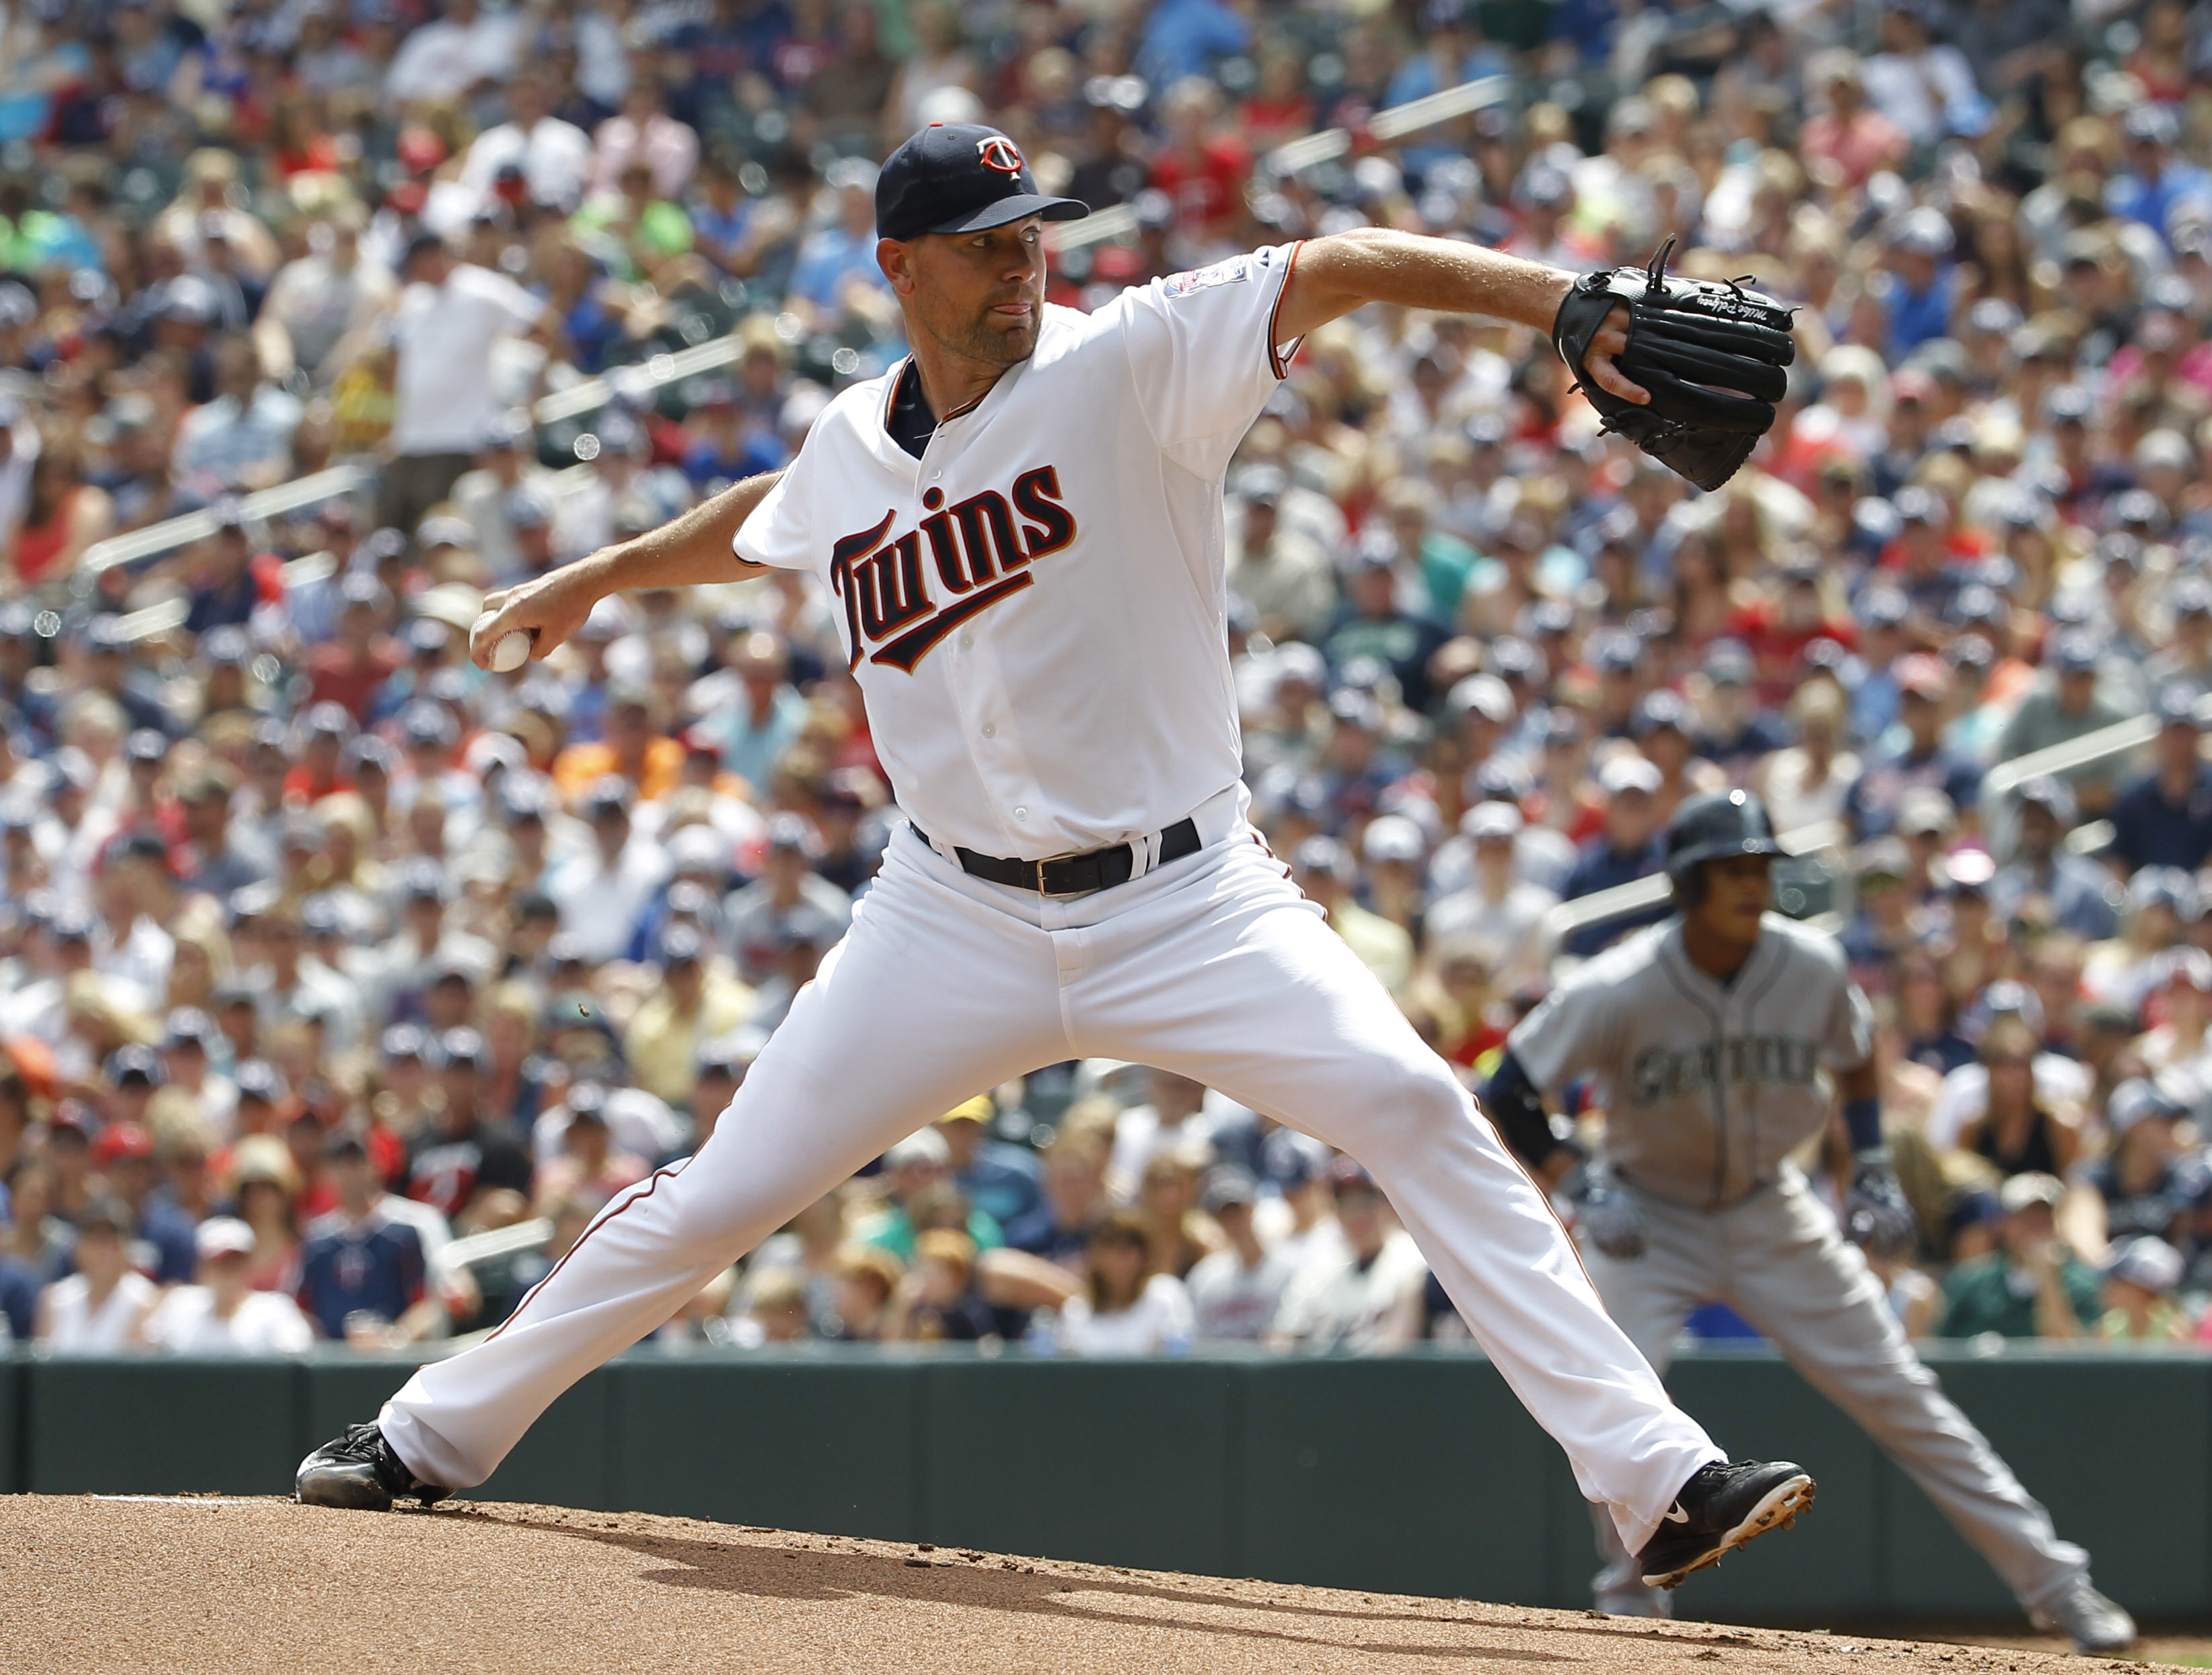 Minnesota Twins starting pitcher Mike Pelfrey delivers to the Seattle Mariners during the first inning of a baseball game in Minneapolis, Sunday, Aug. 2, 2015. (AP Photo/Ann Heisenfelt)